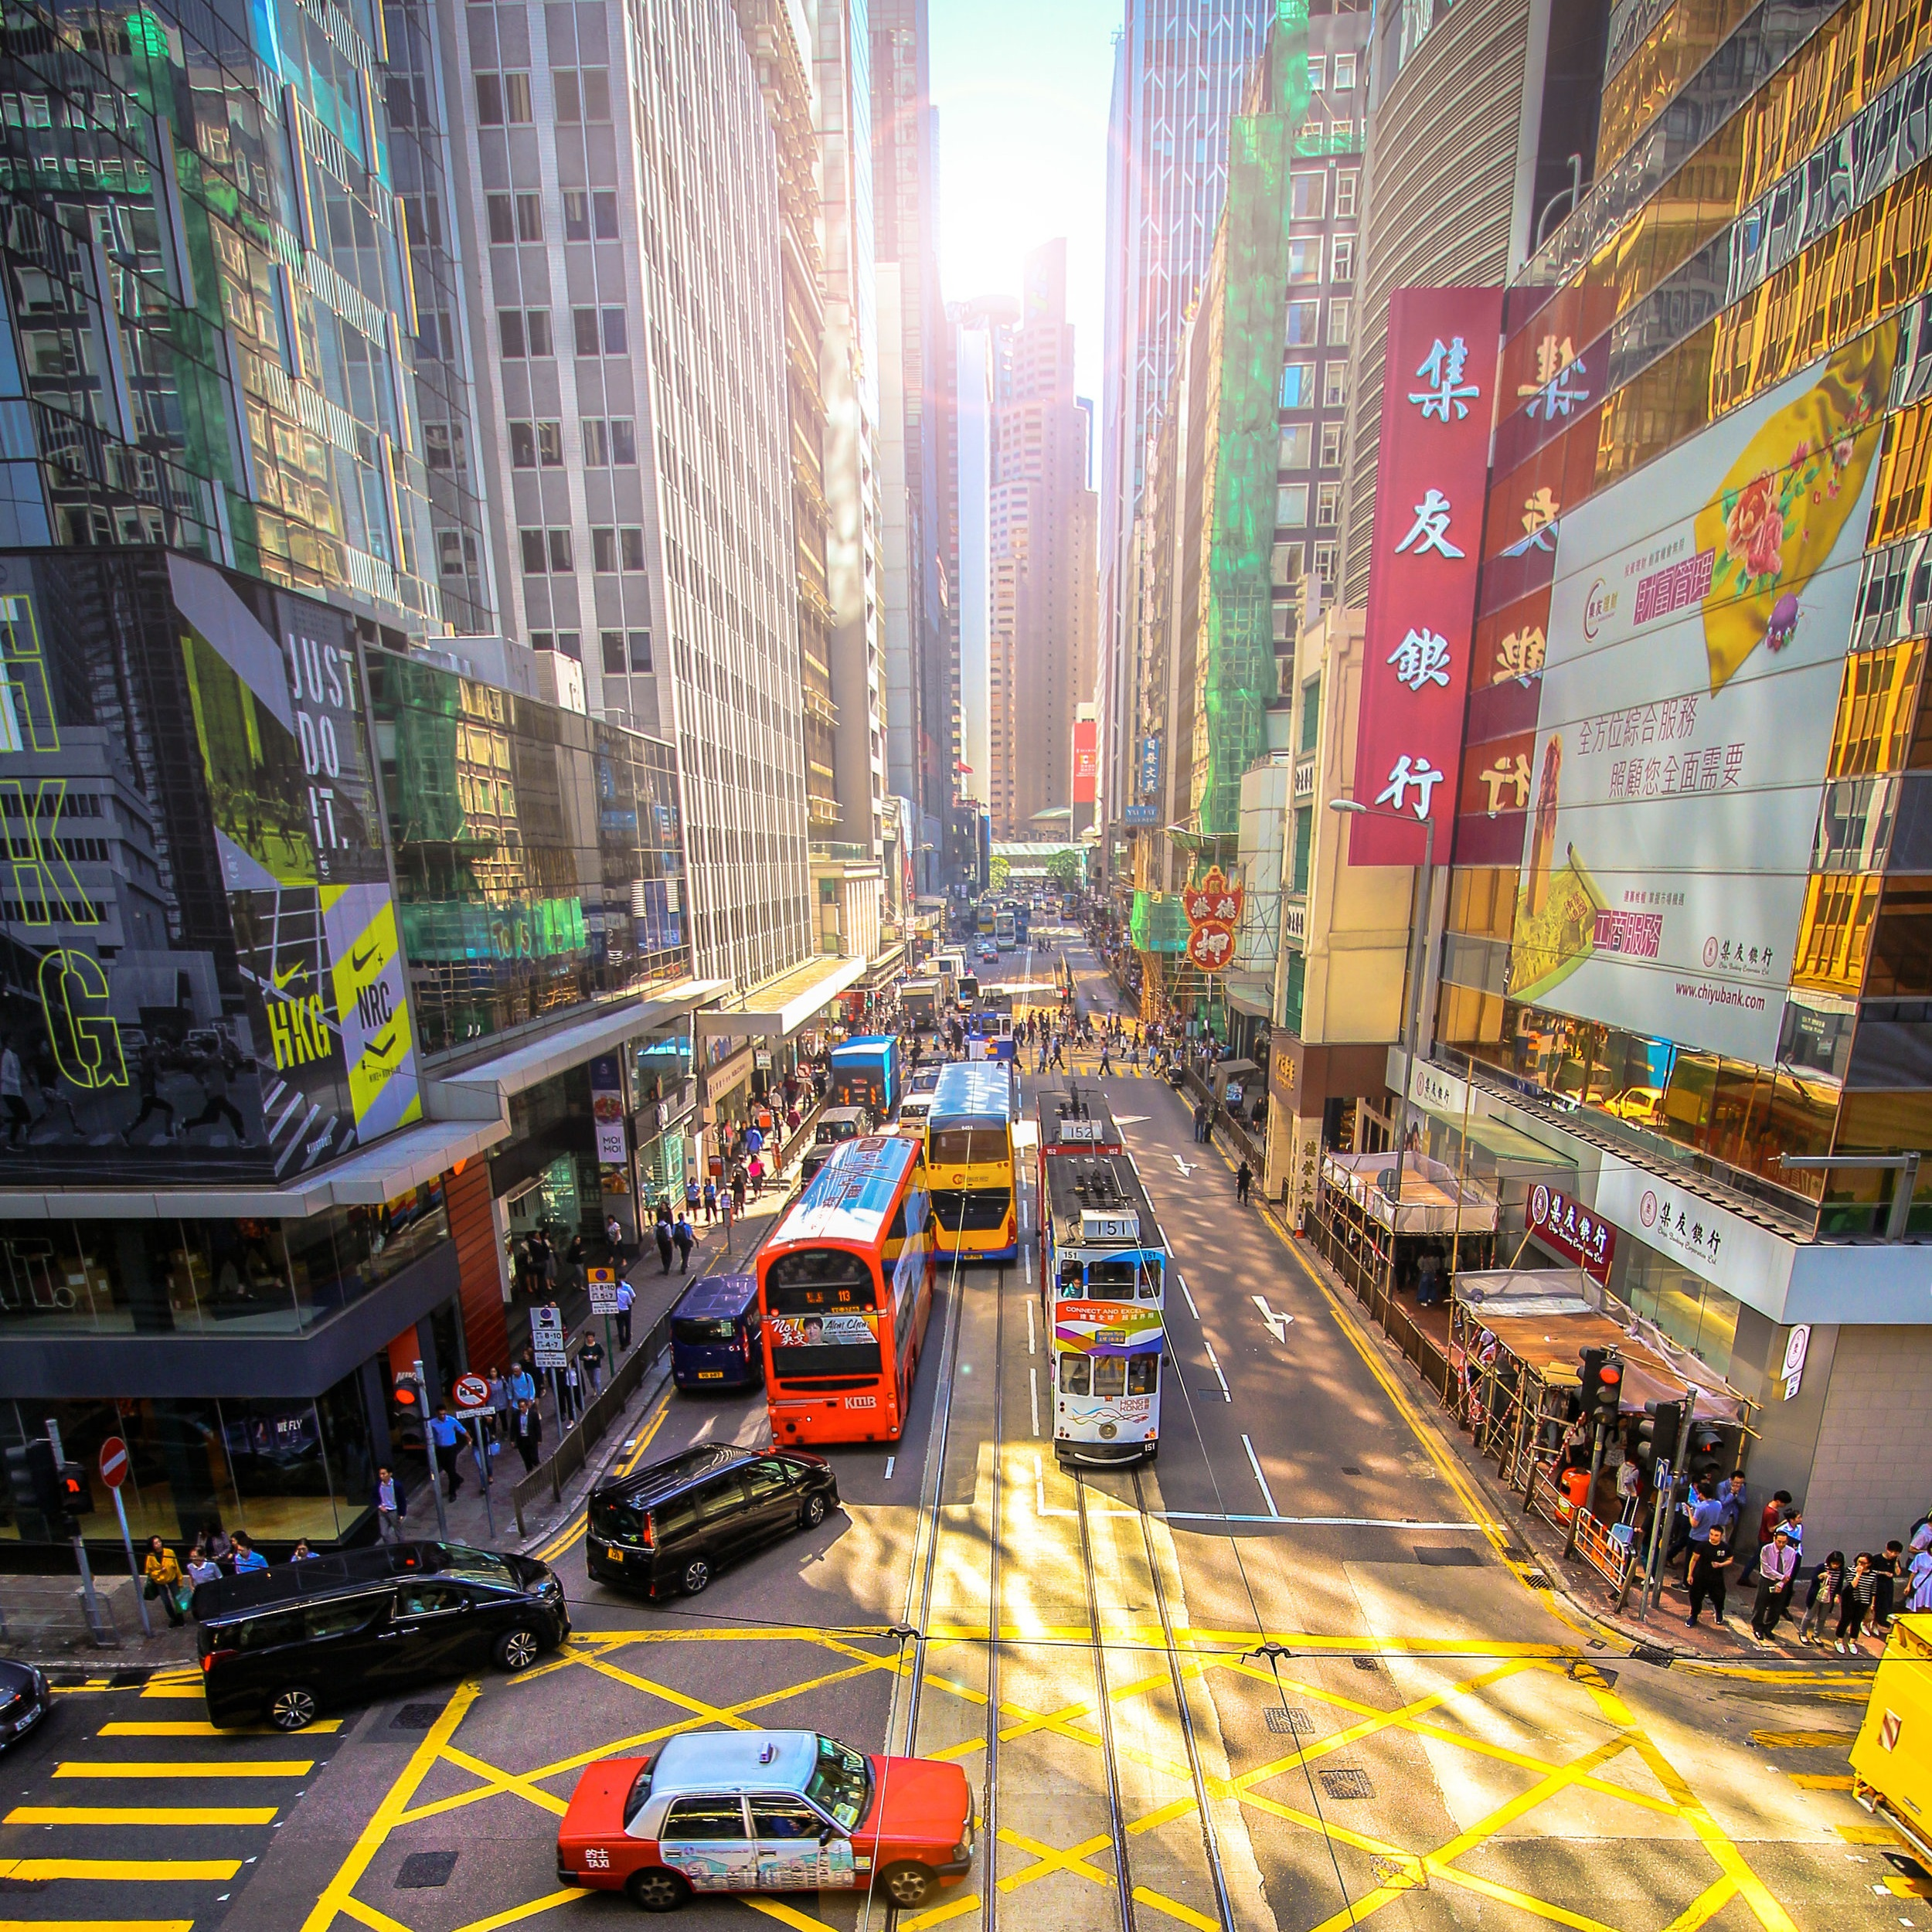 MARCH 13, 2019 HONG KONG - US IMMIGRATION BY INVESTMENT (EB-5)